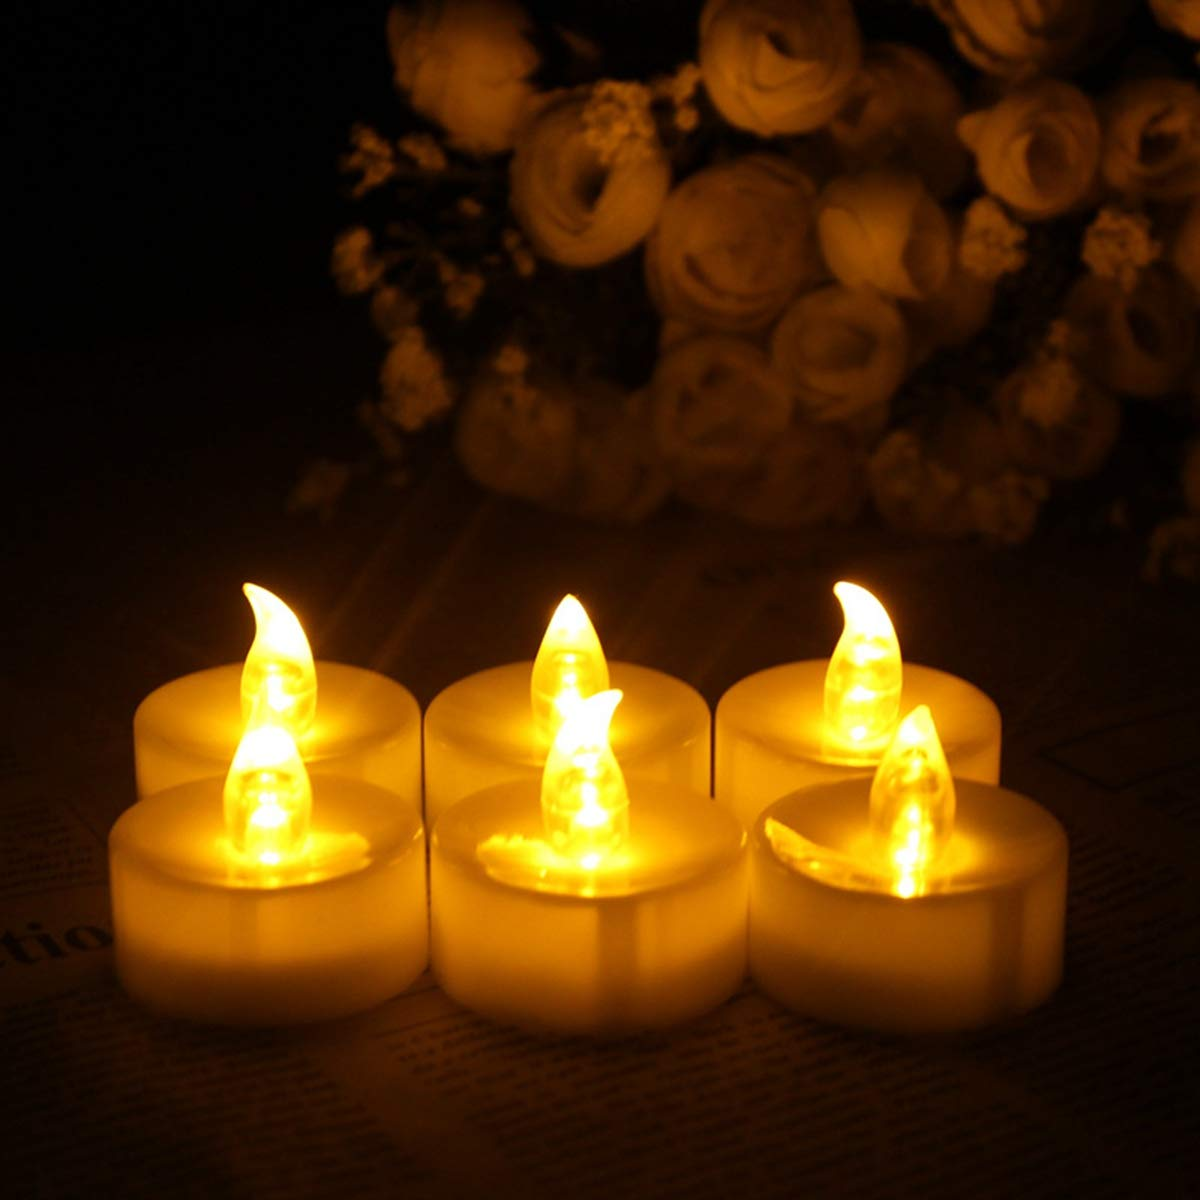 NUOBESTY 12Pcs LED flickering candle light luminous votive tealight candle decorative candle with remote control for proposal wedding party birthday